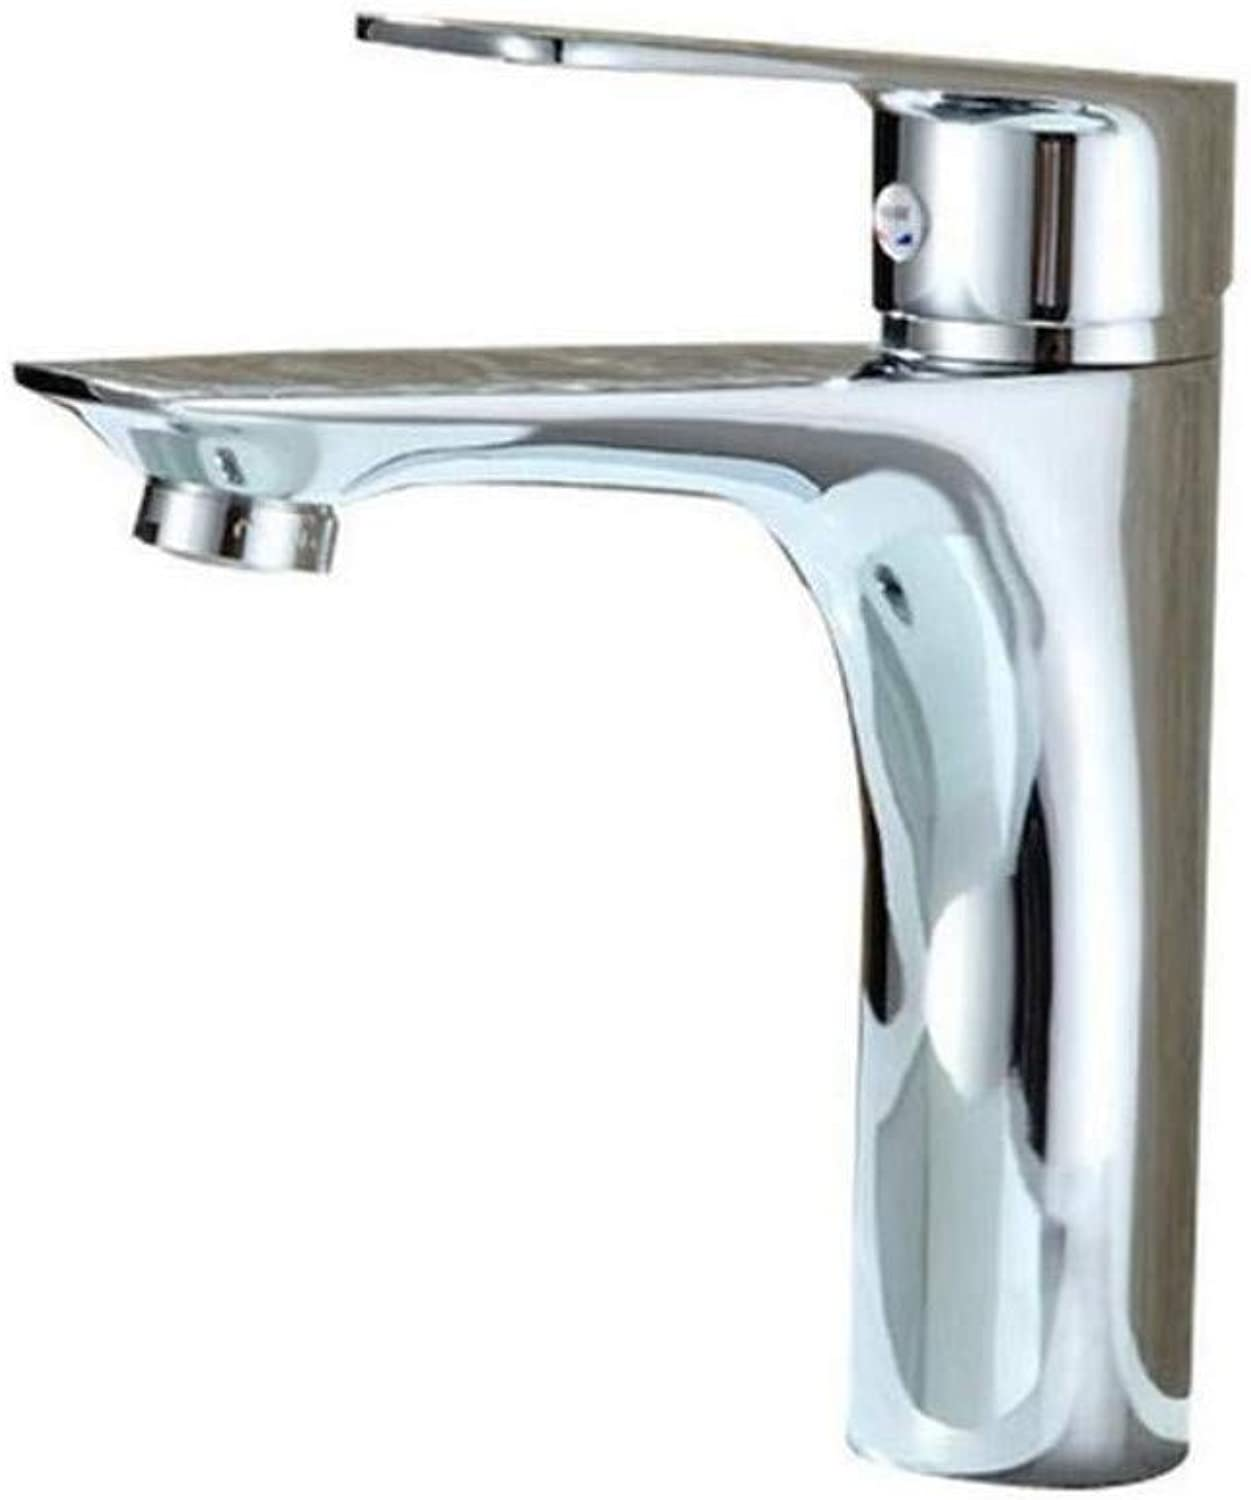 Chrome-Plated Adjustable Temperature-Sensitive Led Faucethot and Cold Faucet Basin Faucet Washbasin Faucet